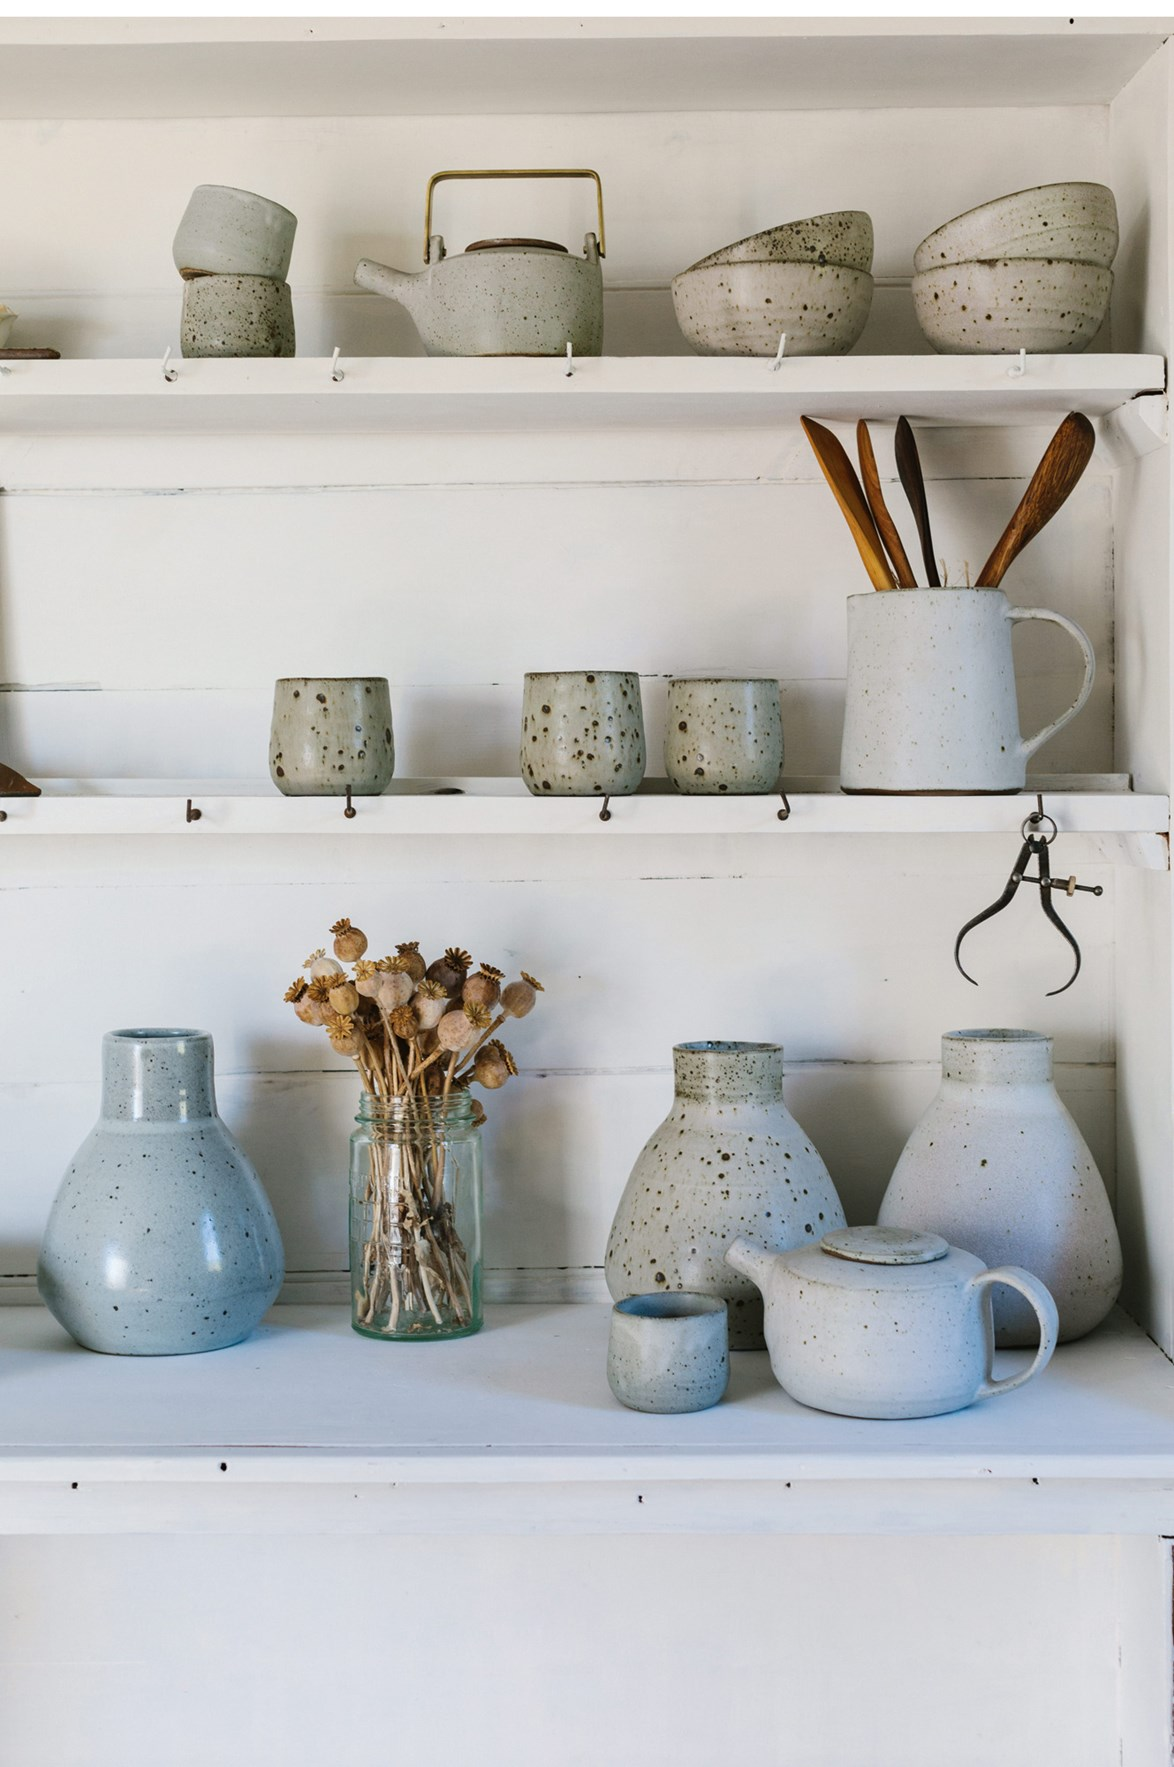 "**Otti Made** <br><br> In the heart of the Barossa Valley at Tanunda, Ilona Glastonbury [makes eco-friendly pottery](https://www.homestolove.com.au/eco-friendly-pottery-14027|target=""_blank"")using materials sourced around her cosy cottage. Named the 'lovacore' tradition, Ilona's practice seeks to minimise her impact on the environment, all while producing beautifully tactile spoons, bowls, dishes and plates for her small business. [ottimade.com.au](https://www.ottimade.com.au/